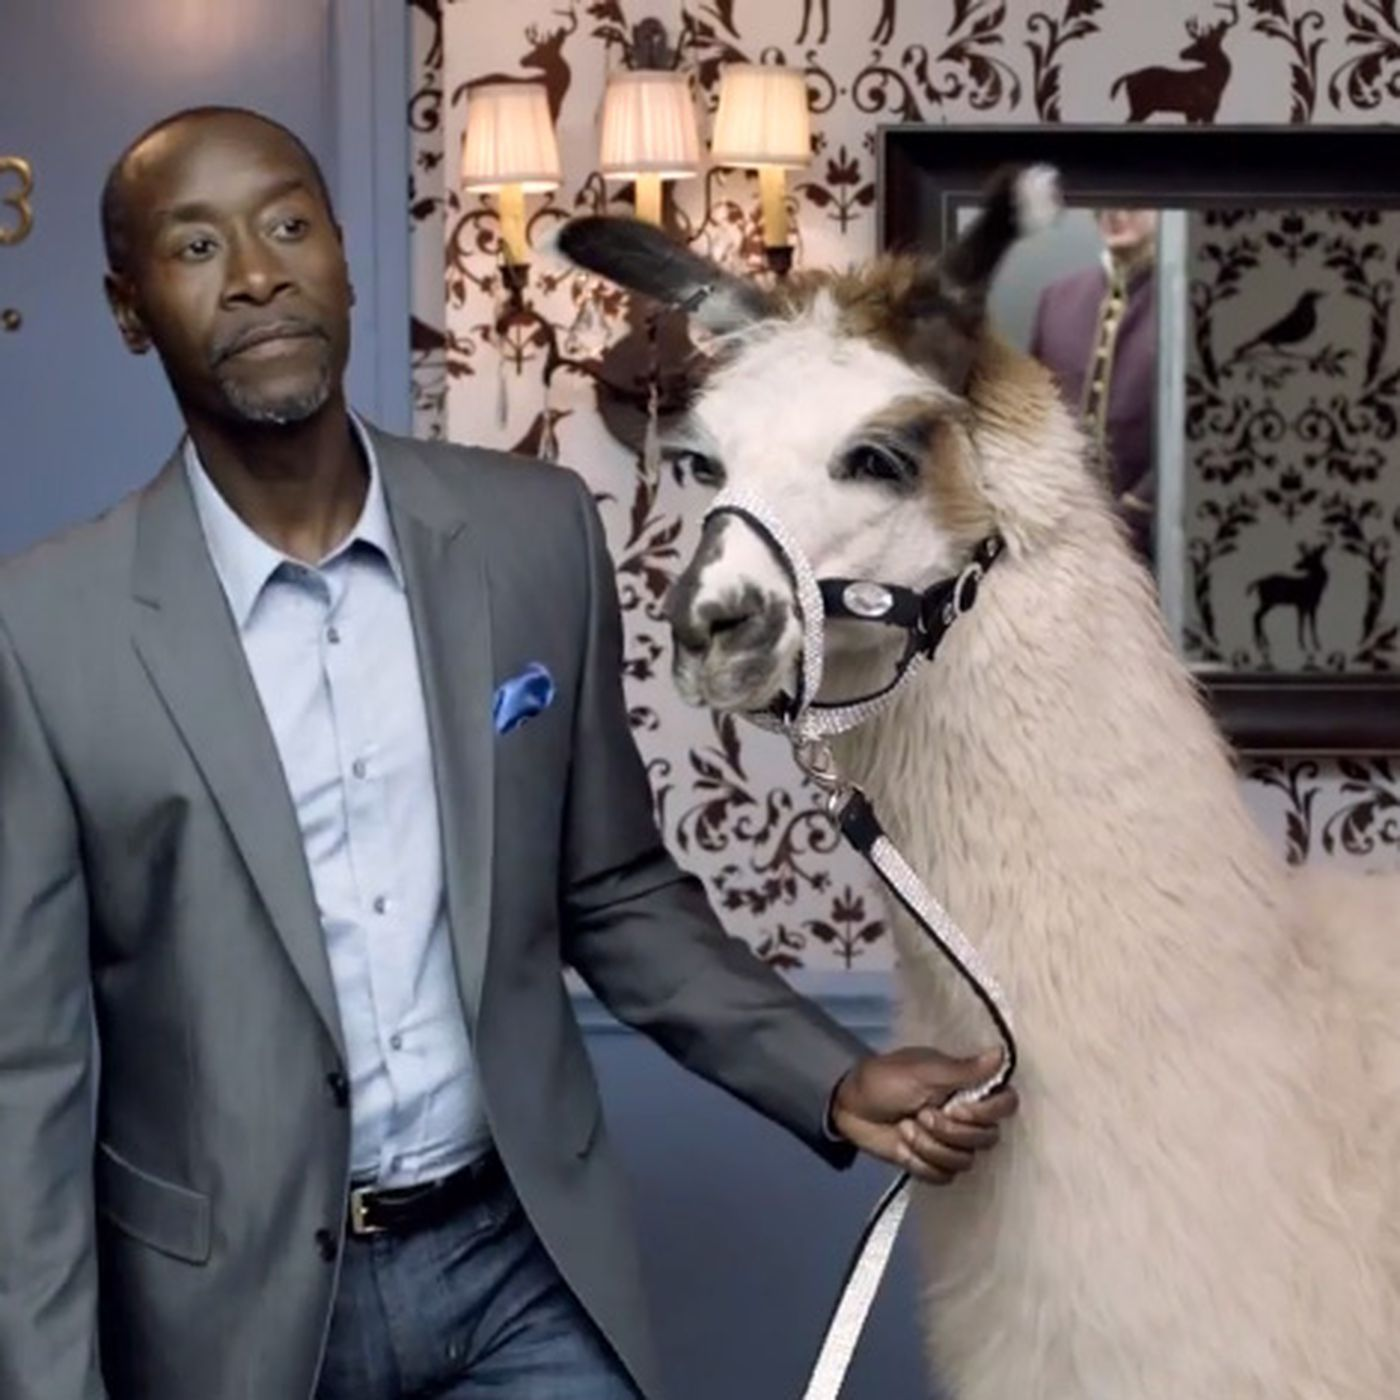 2014 super bowl commercial table tennis arnold schwarzenegger don 2014 super bowl commercial table tennis arnold schwarzenegger don cheadle a llama and twins silver and black pride aloadofball Choice Image